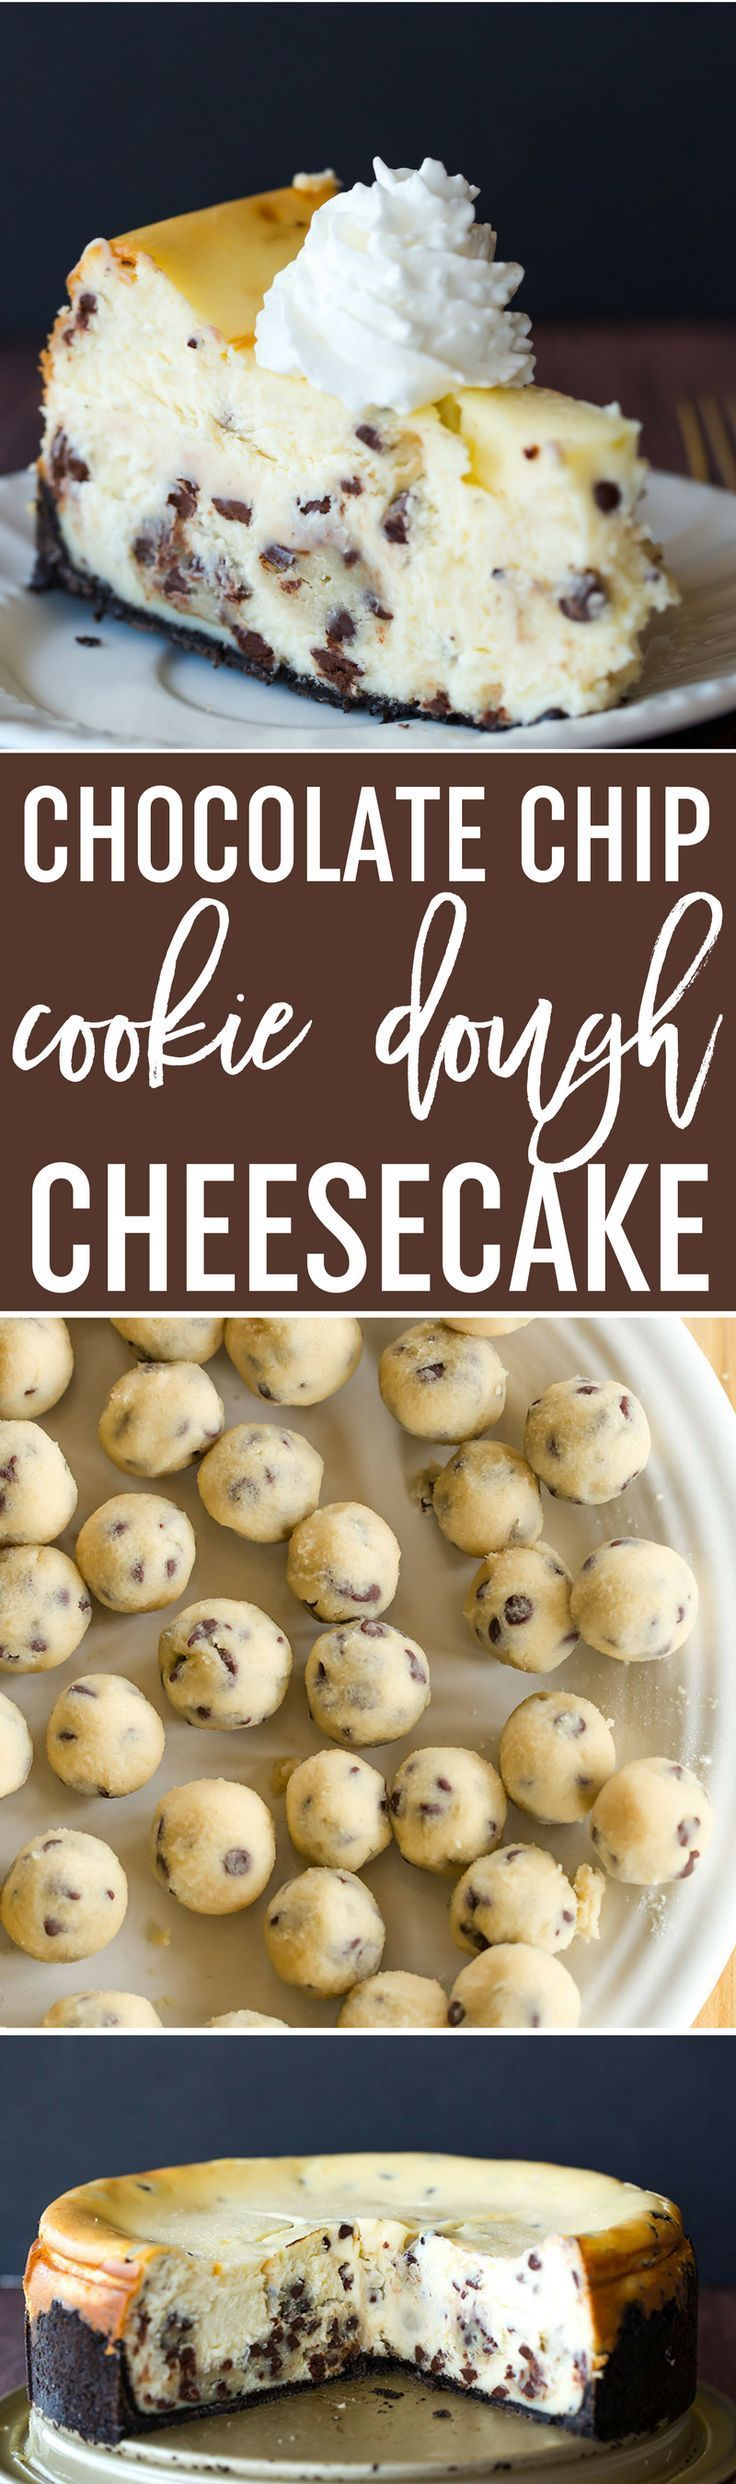 The best cheesecake recipe loaded with chunks of chocolate chip cookie dough and mini chocolate chips – a cookie dough lovers